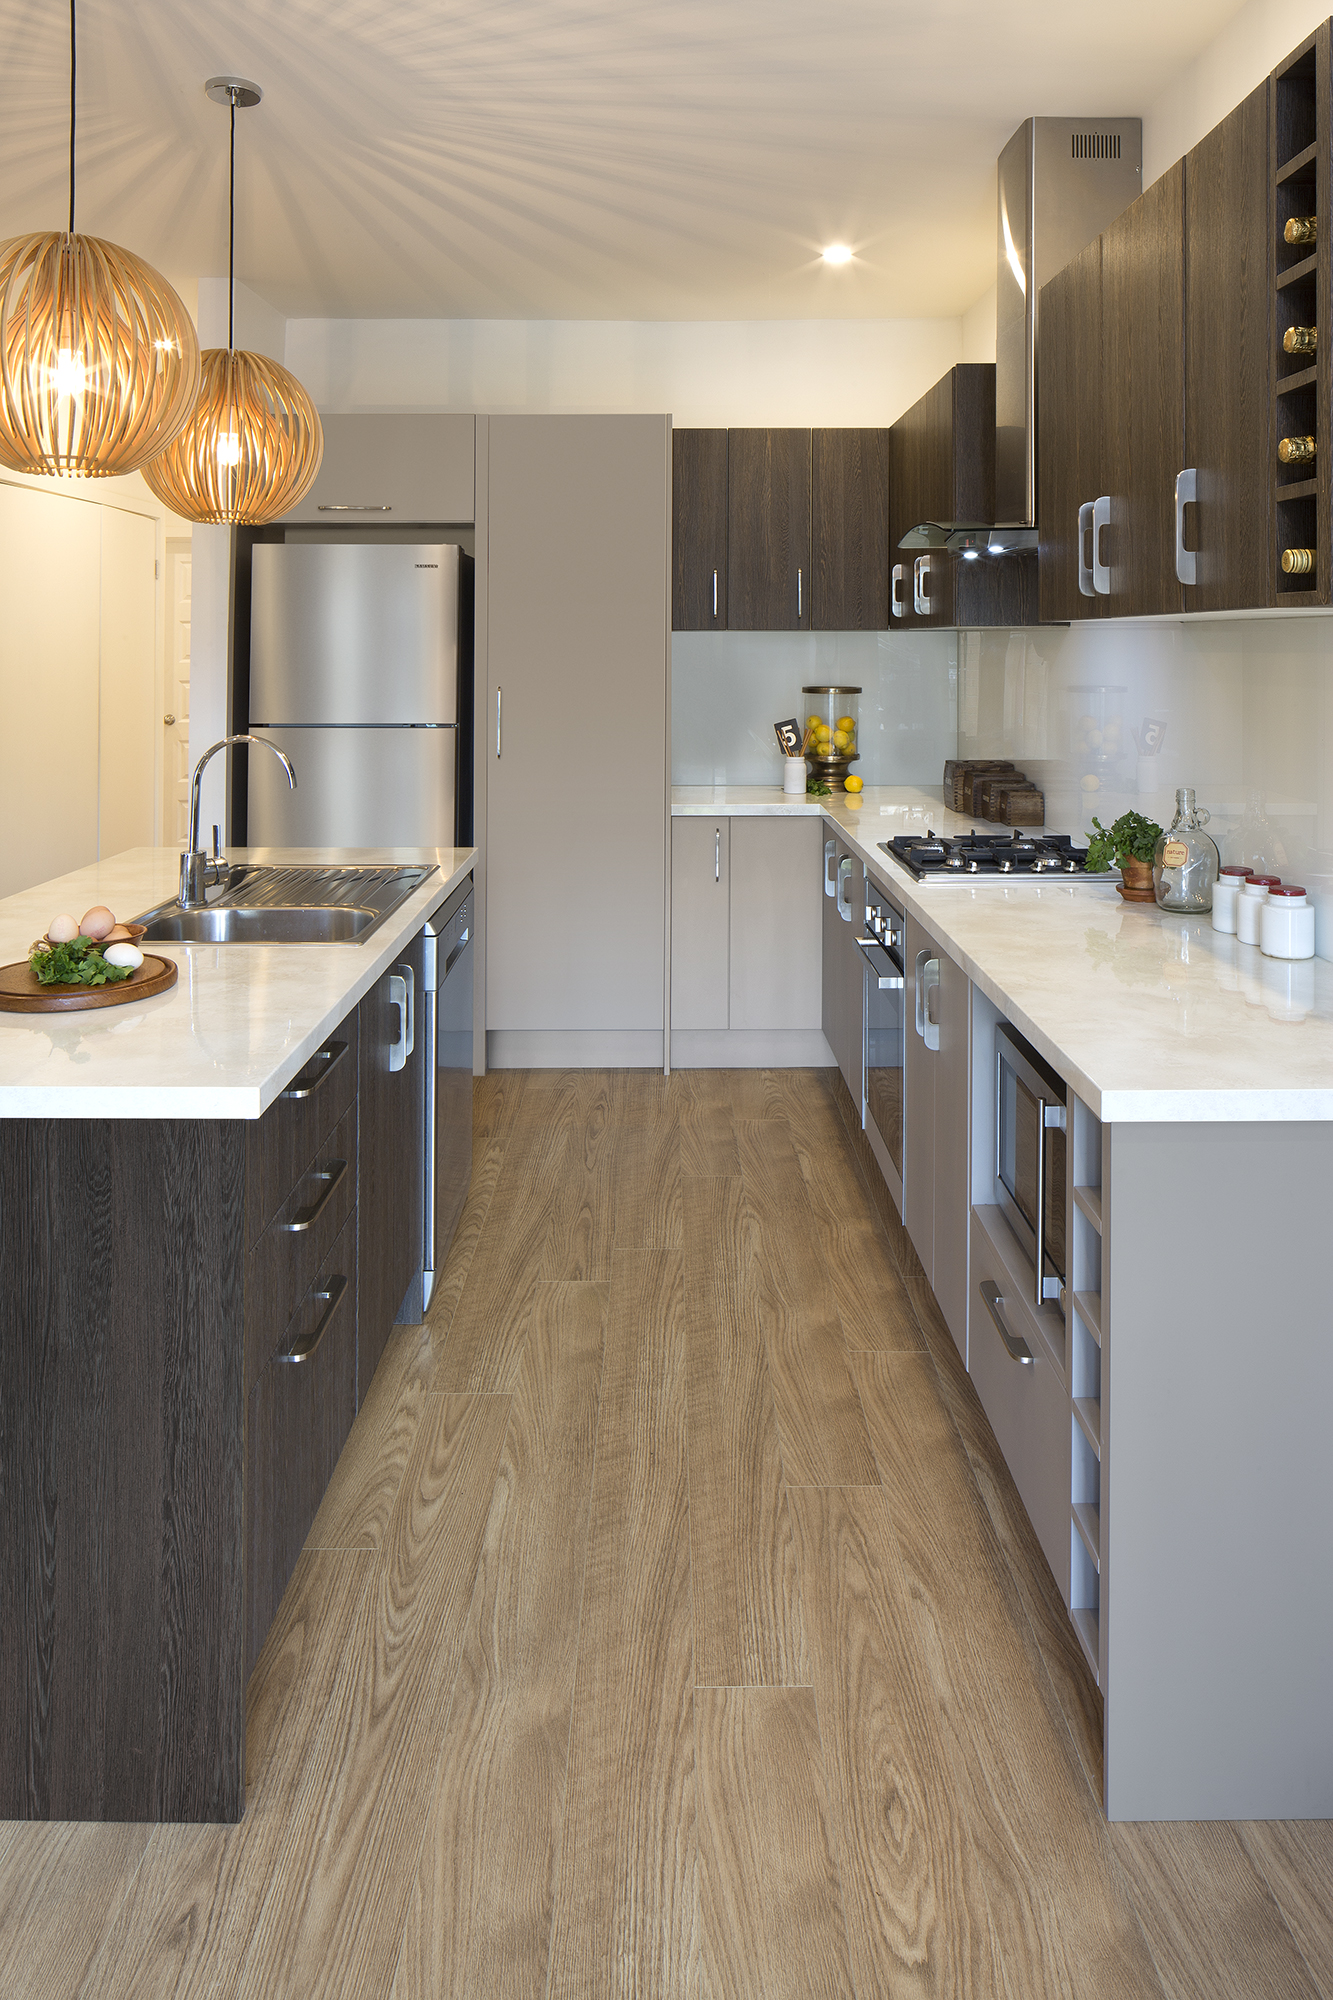 Bunnings Kitchens Flat Packs Earthy Feel Kitchen Inspiration And Ideas Kaboodle Kitchen